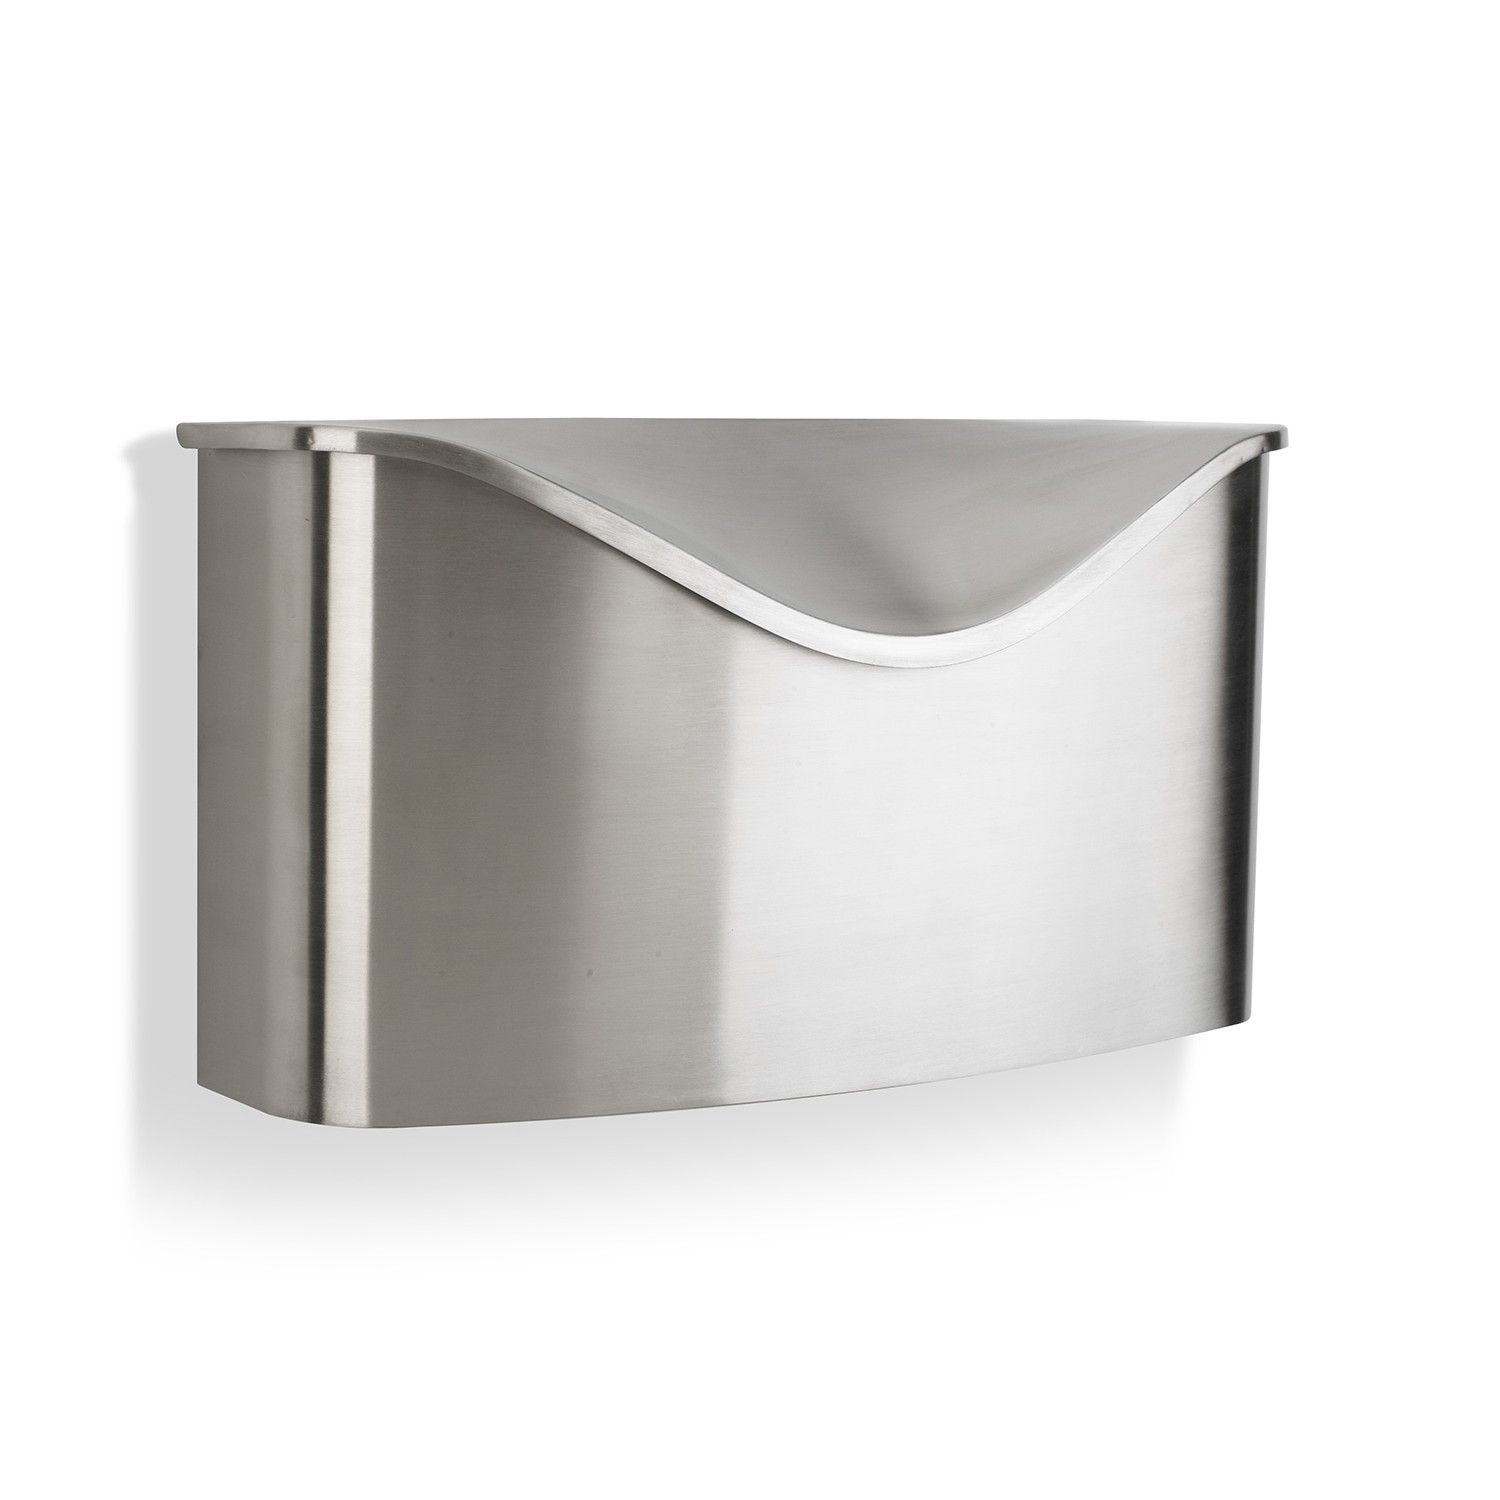 Postino Mailbox Stainless Steel Wall Mount Mailbox Wall Mounted Modern Mailbox Stainless Steel Mailbox